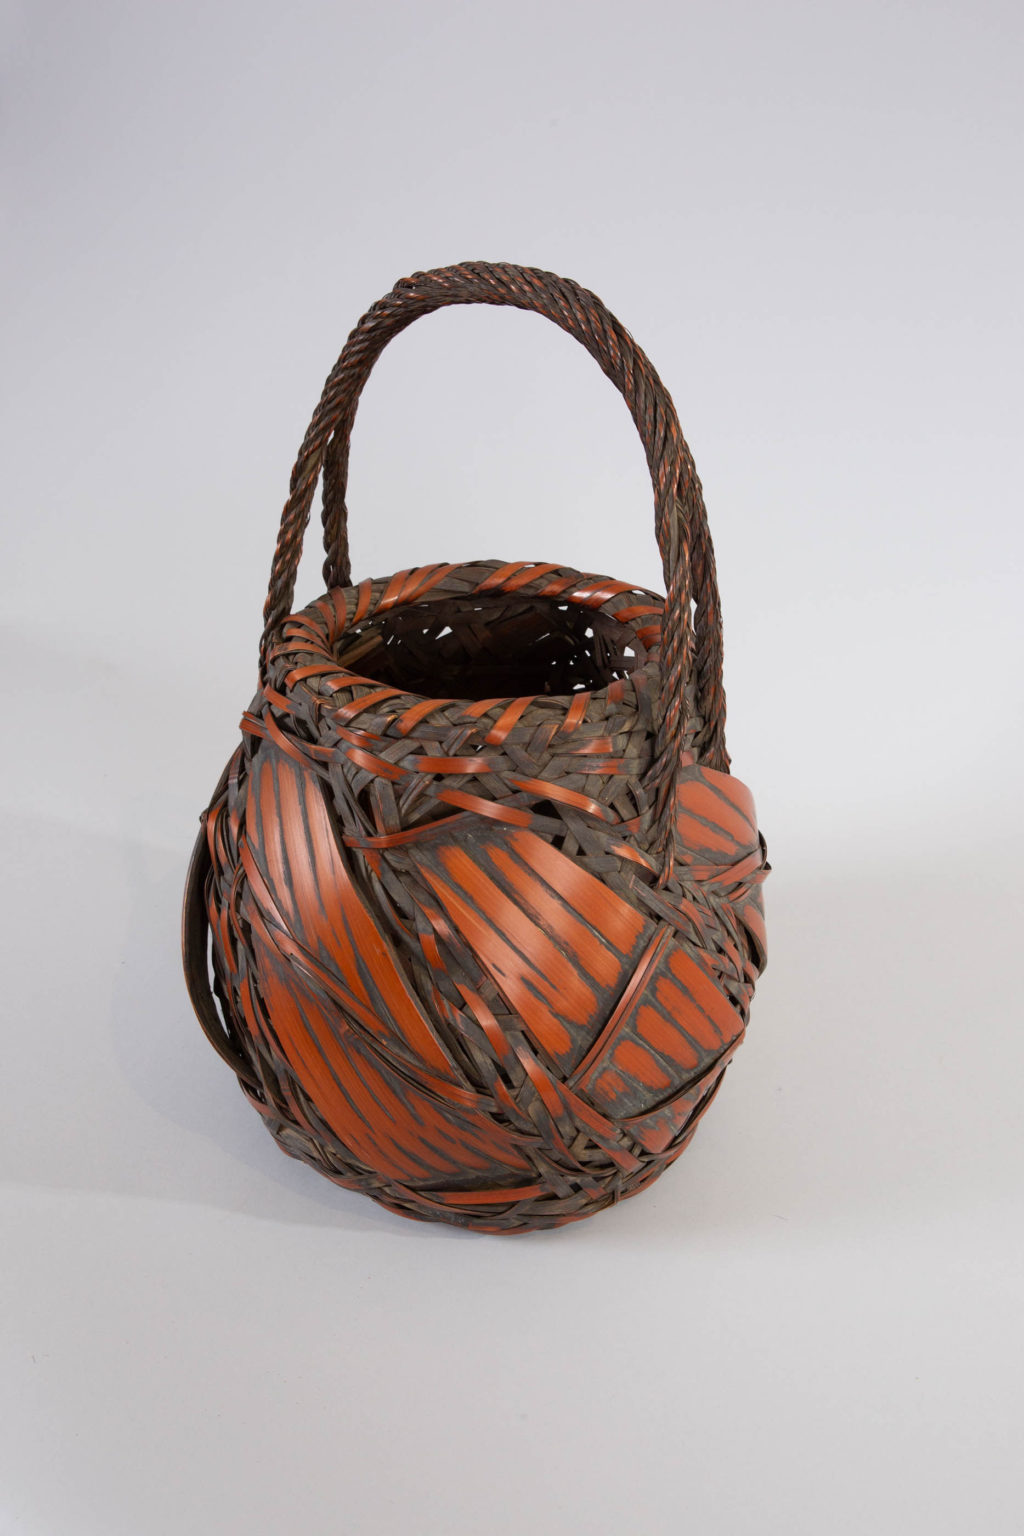 Japanese Antique Large Bamboo Basket for Flower Arranging (Ikebana)